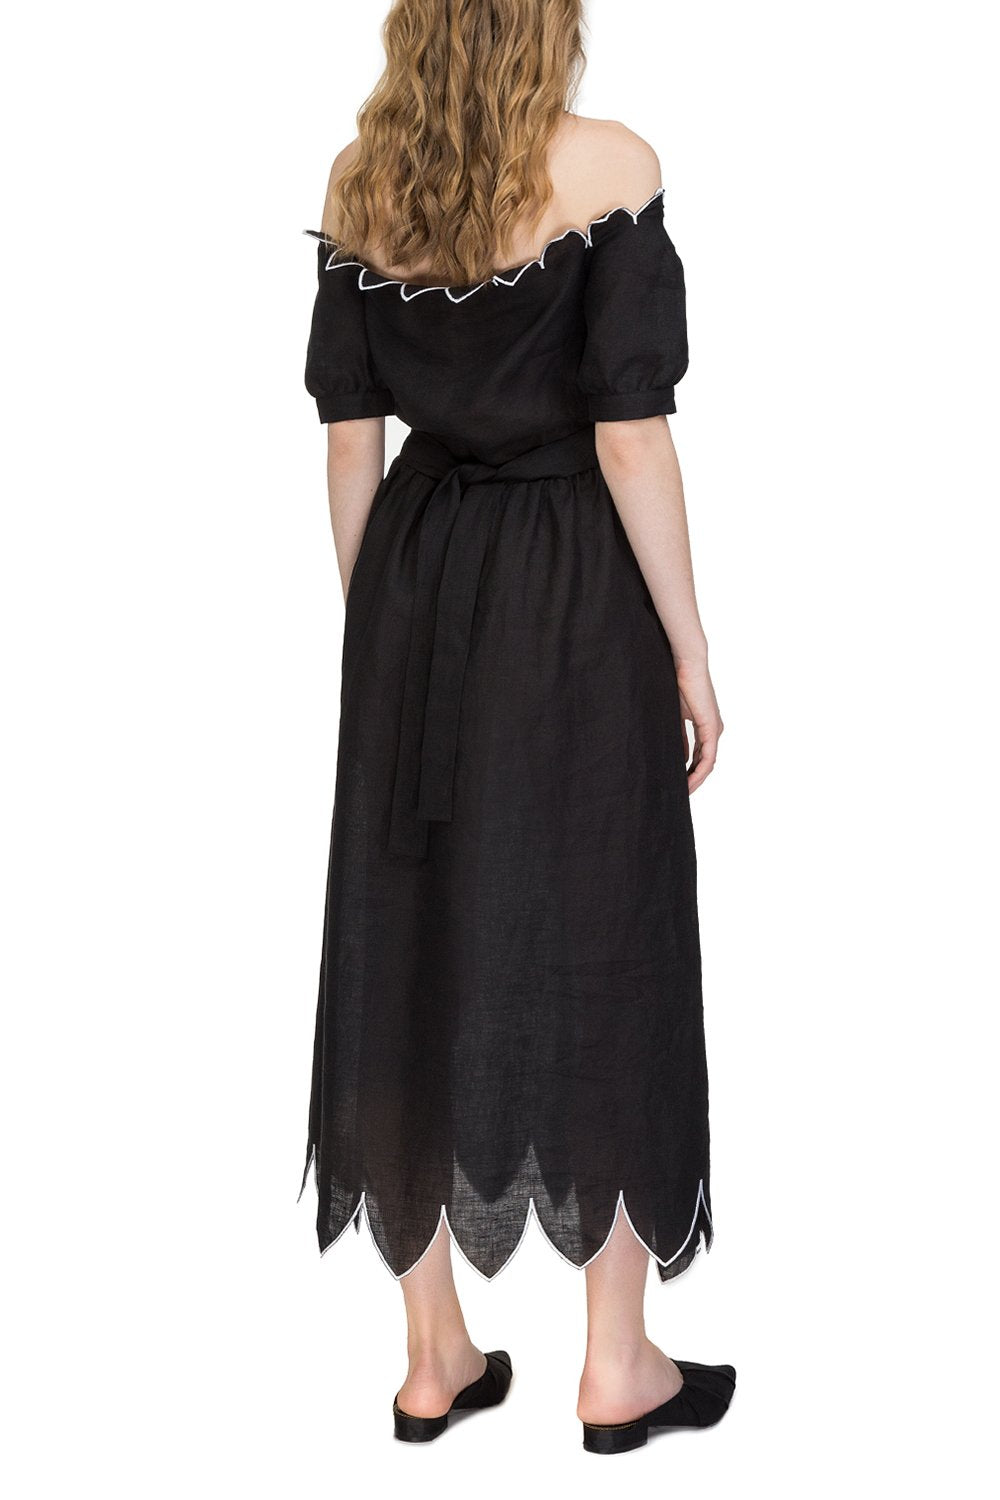 """Venus"" dress with sleeves"